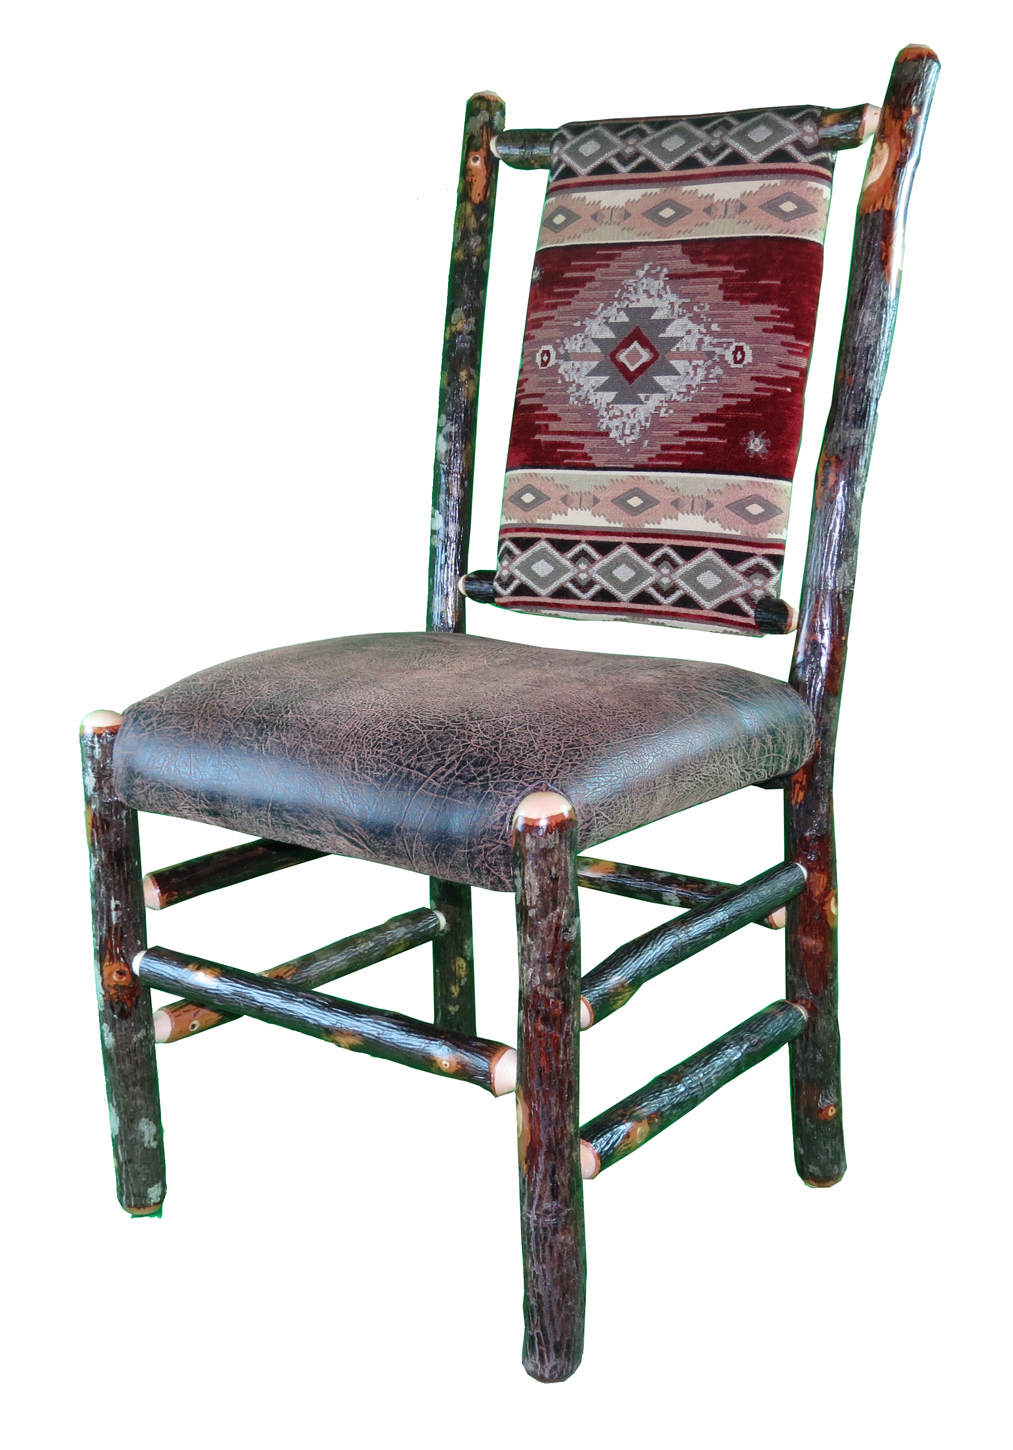 Rustic Hickory Dining Chair with upholstered seat and back - Southwest Red Diamond Fabric